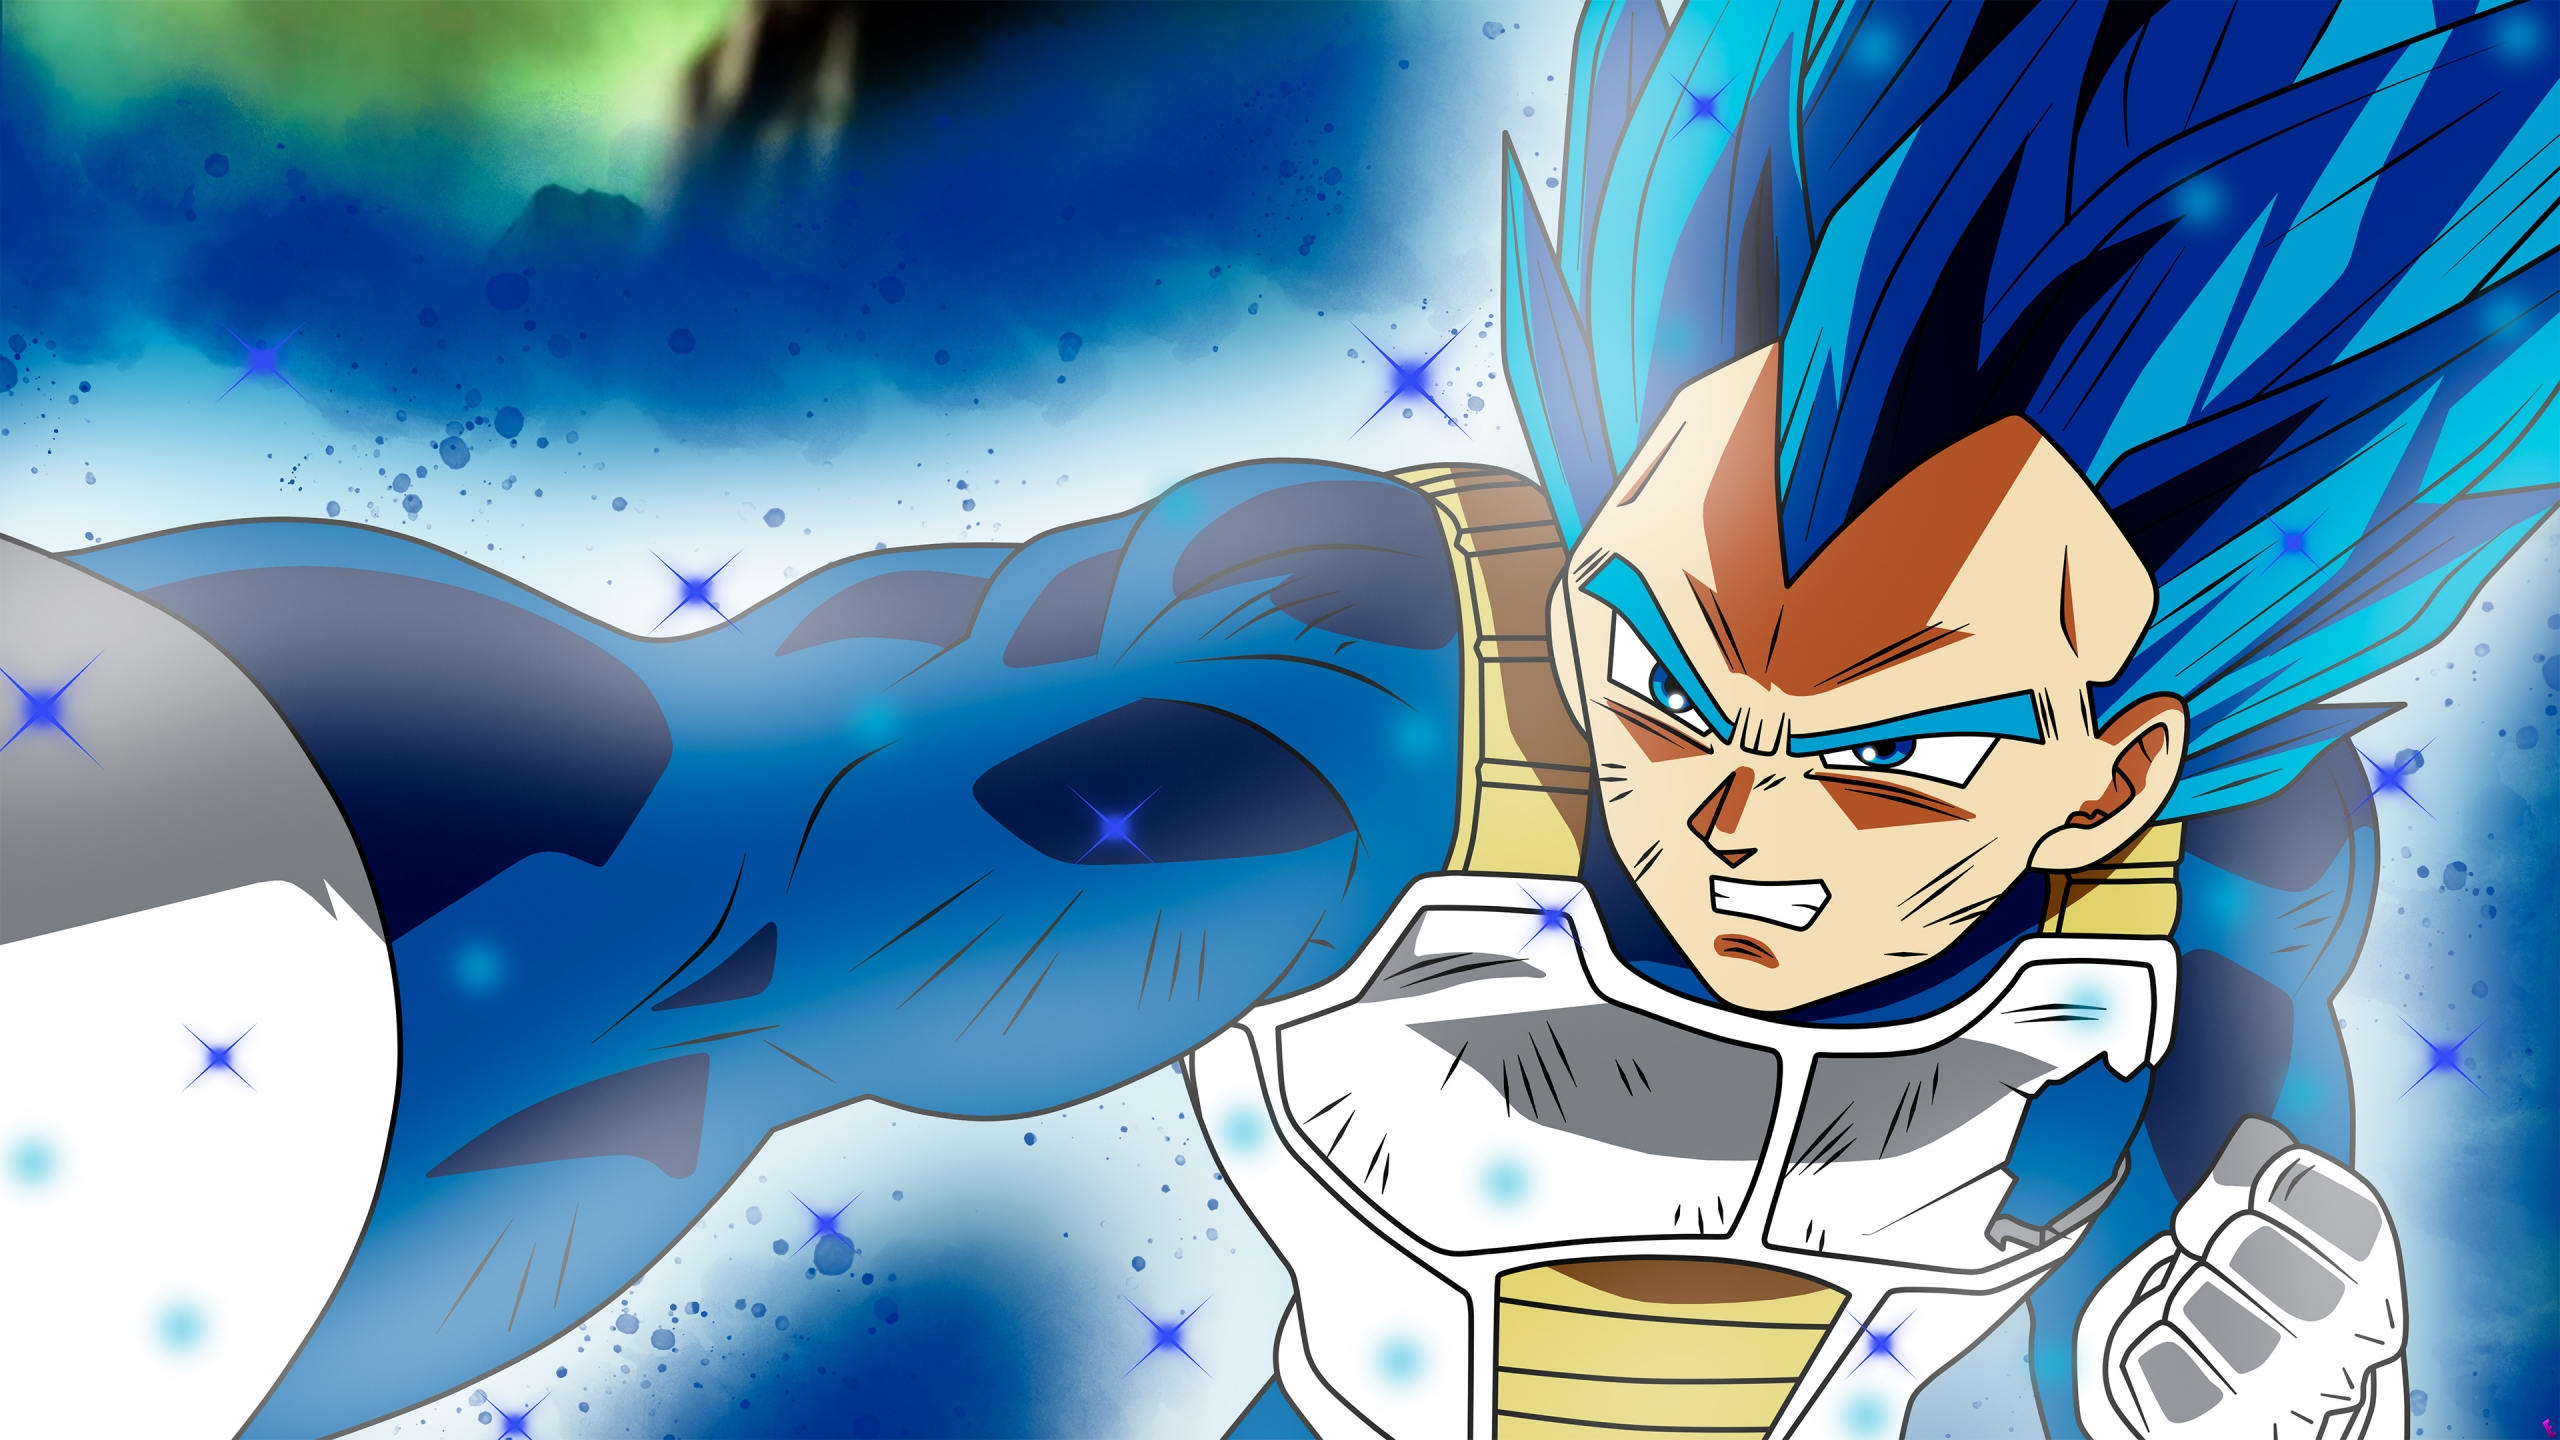 Vegeta Dragon Ball Super Anime Fondo De Pantalla 4k Ultra Hd